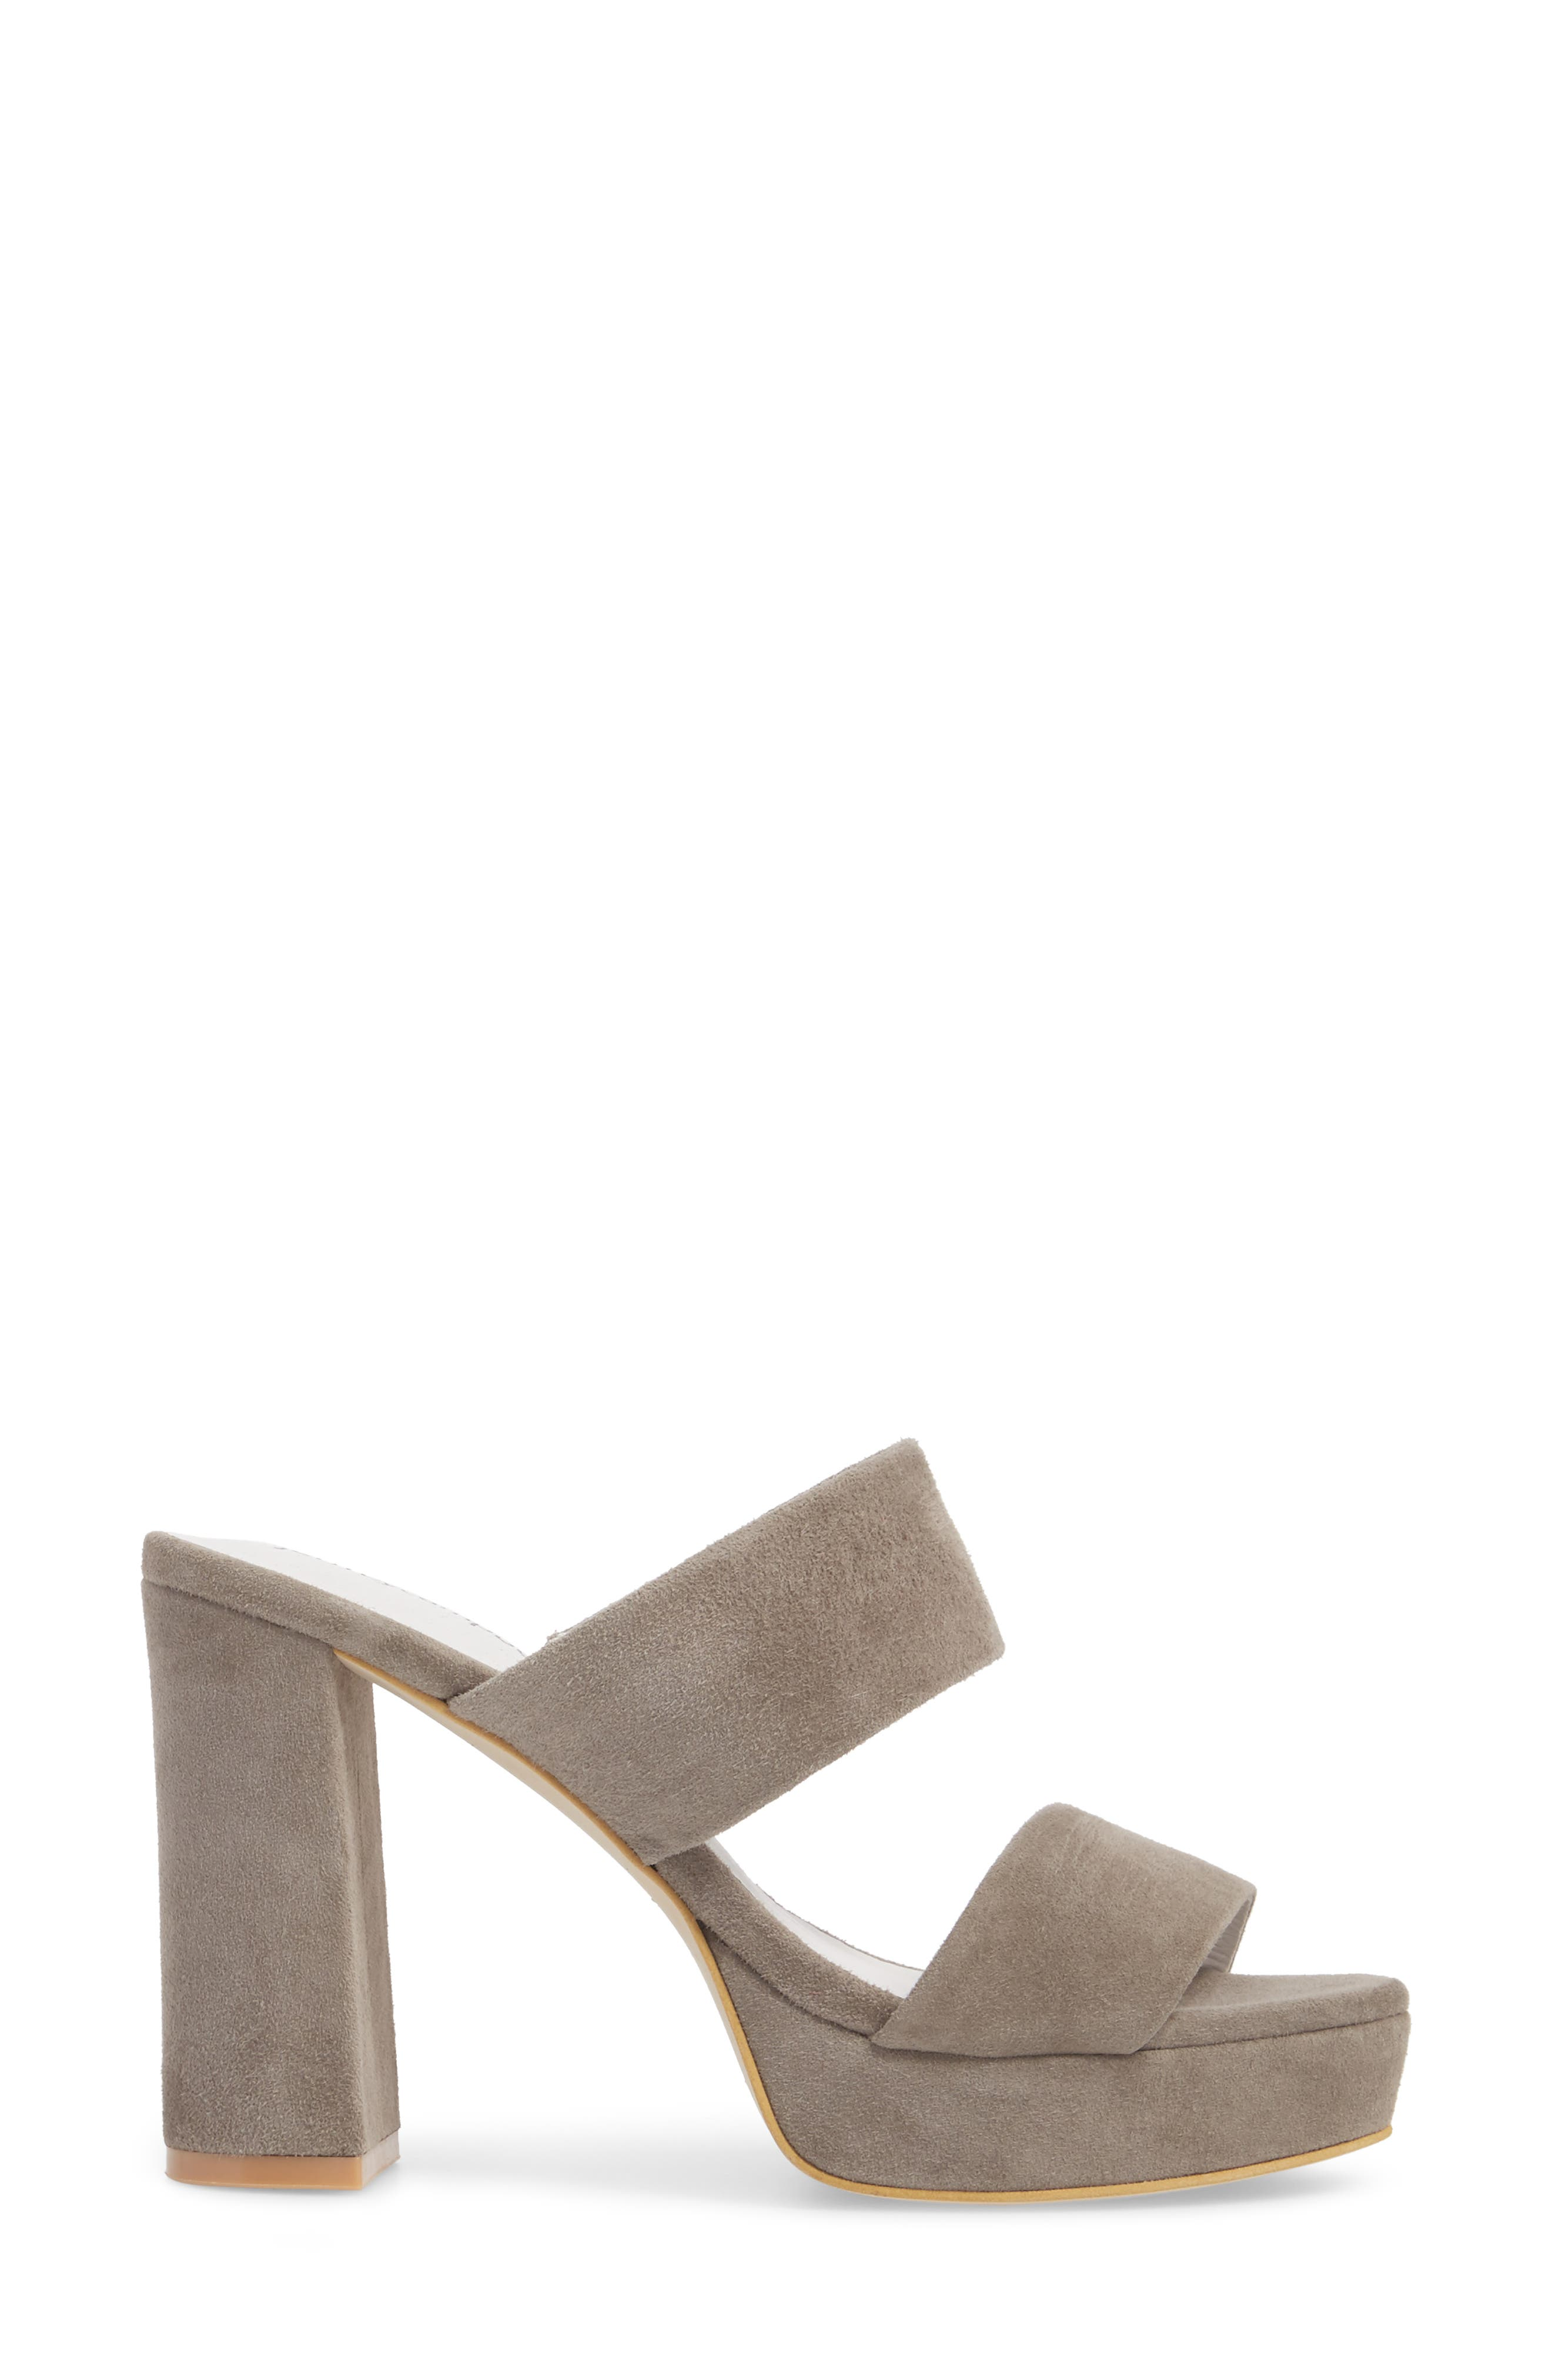 Adriana Double Band Platform Sandal,                             Alternate thumbnail 3, color,                             Grey Suede